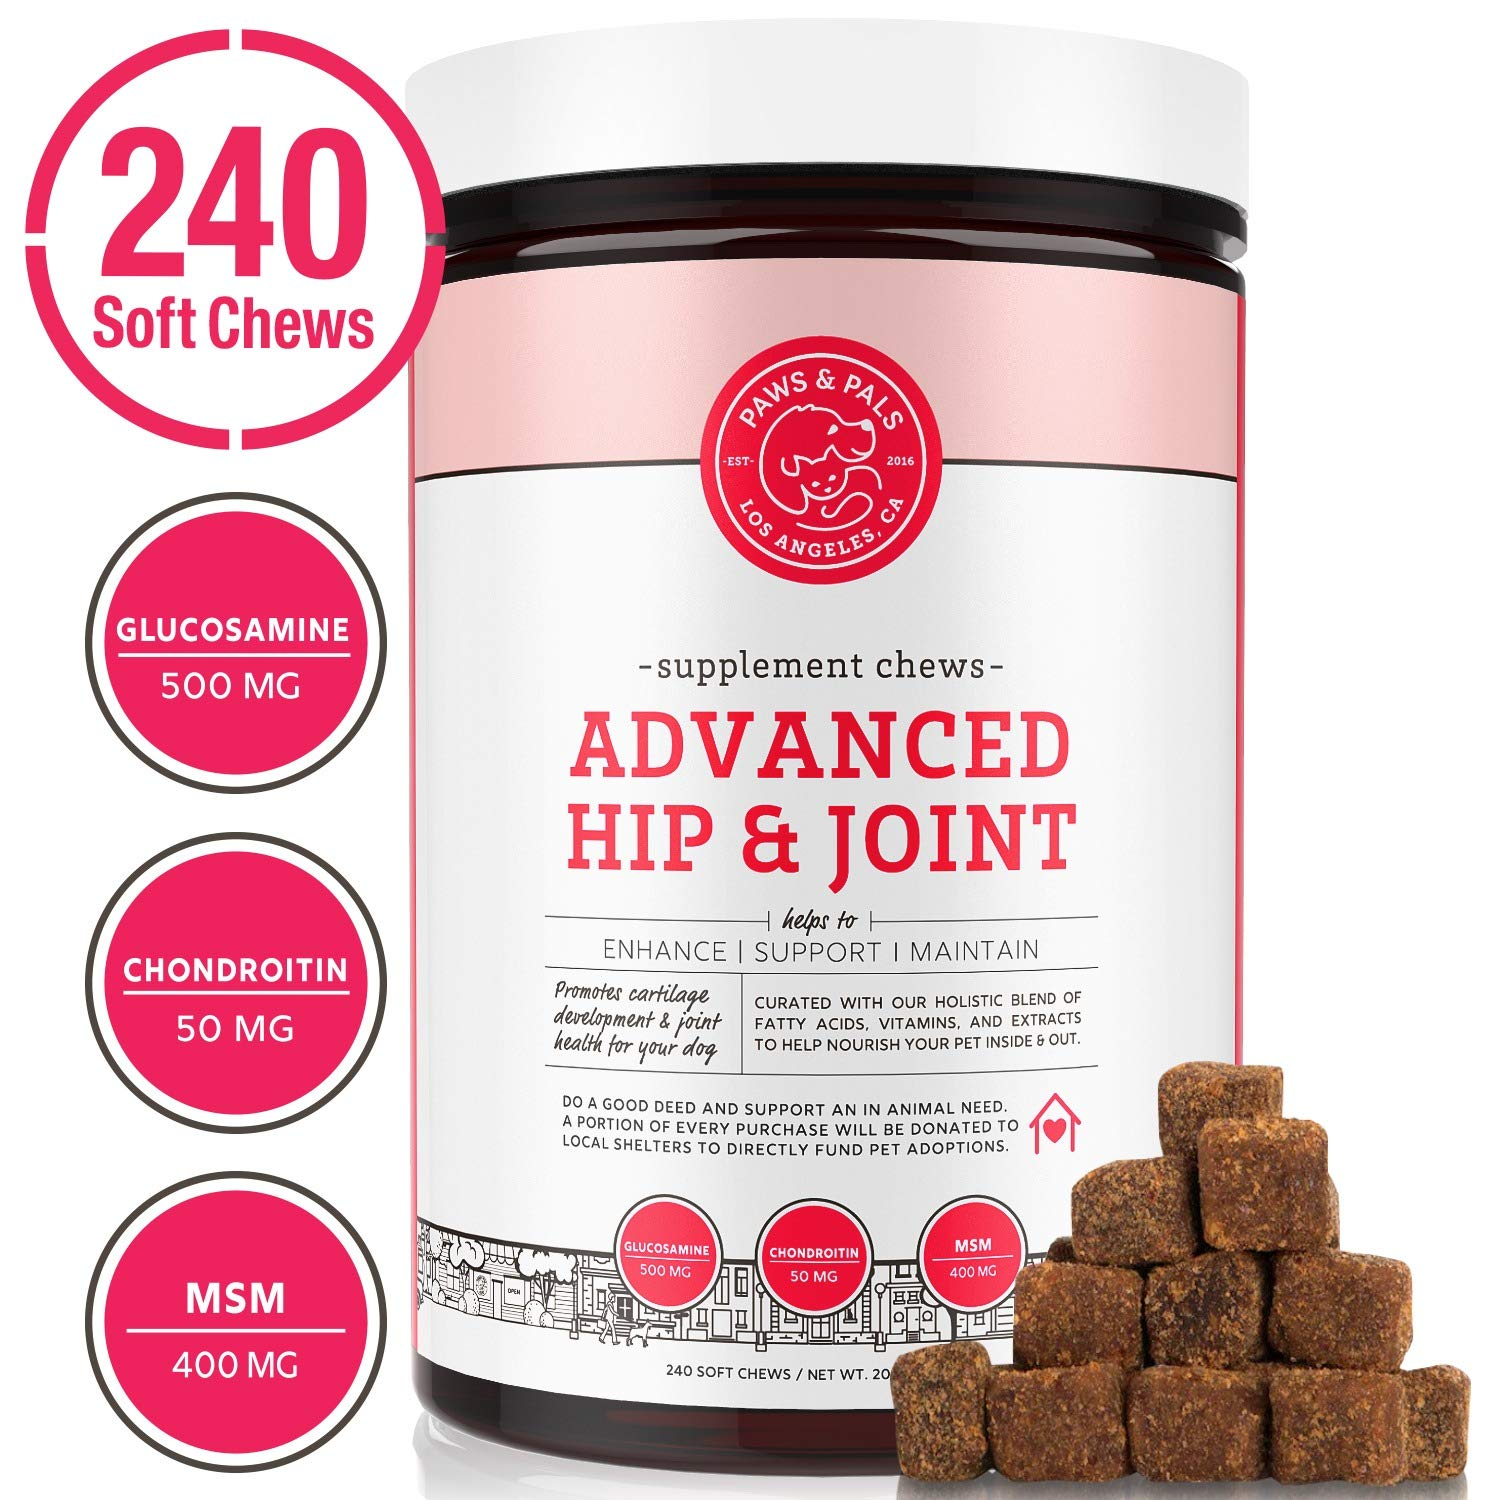 Paws & Pals Glucosamine Supplement for Dogs: Hip & Joint Health Supplements with Chondroitin & MSM for Pain Relief & Senior Dog/Cat Arthritis Support - Chewable Pet Multi Vitamin - 240 Soft Chews by Paws & Pals